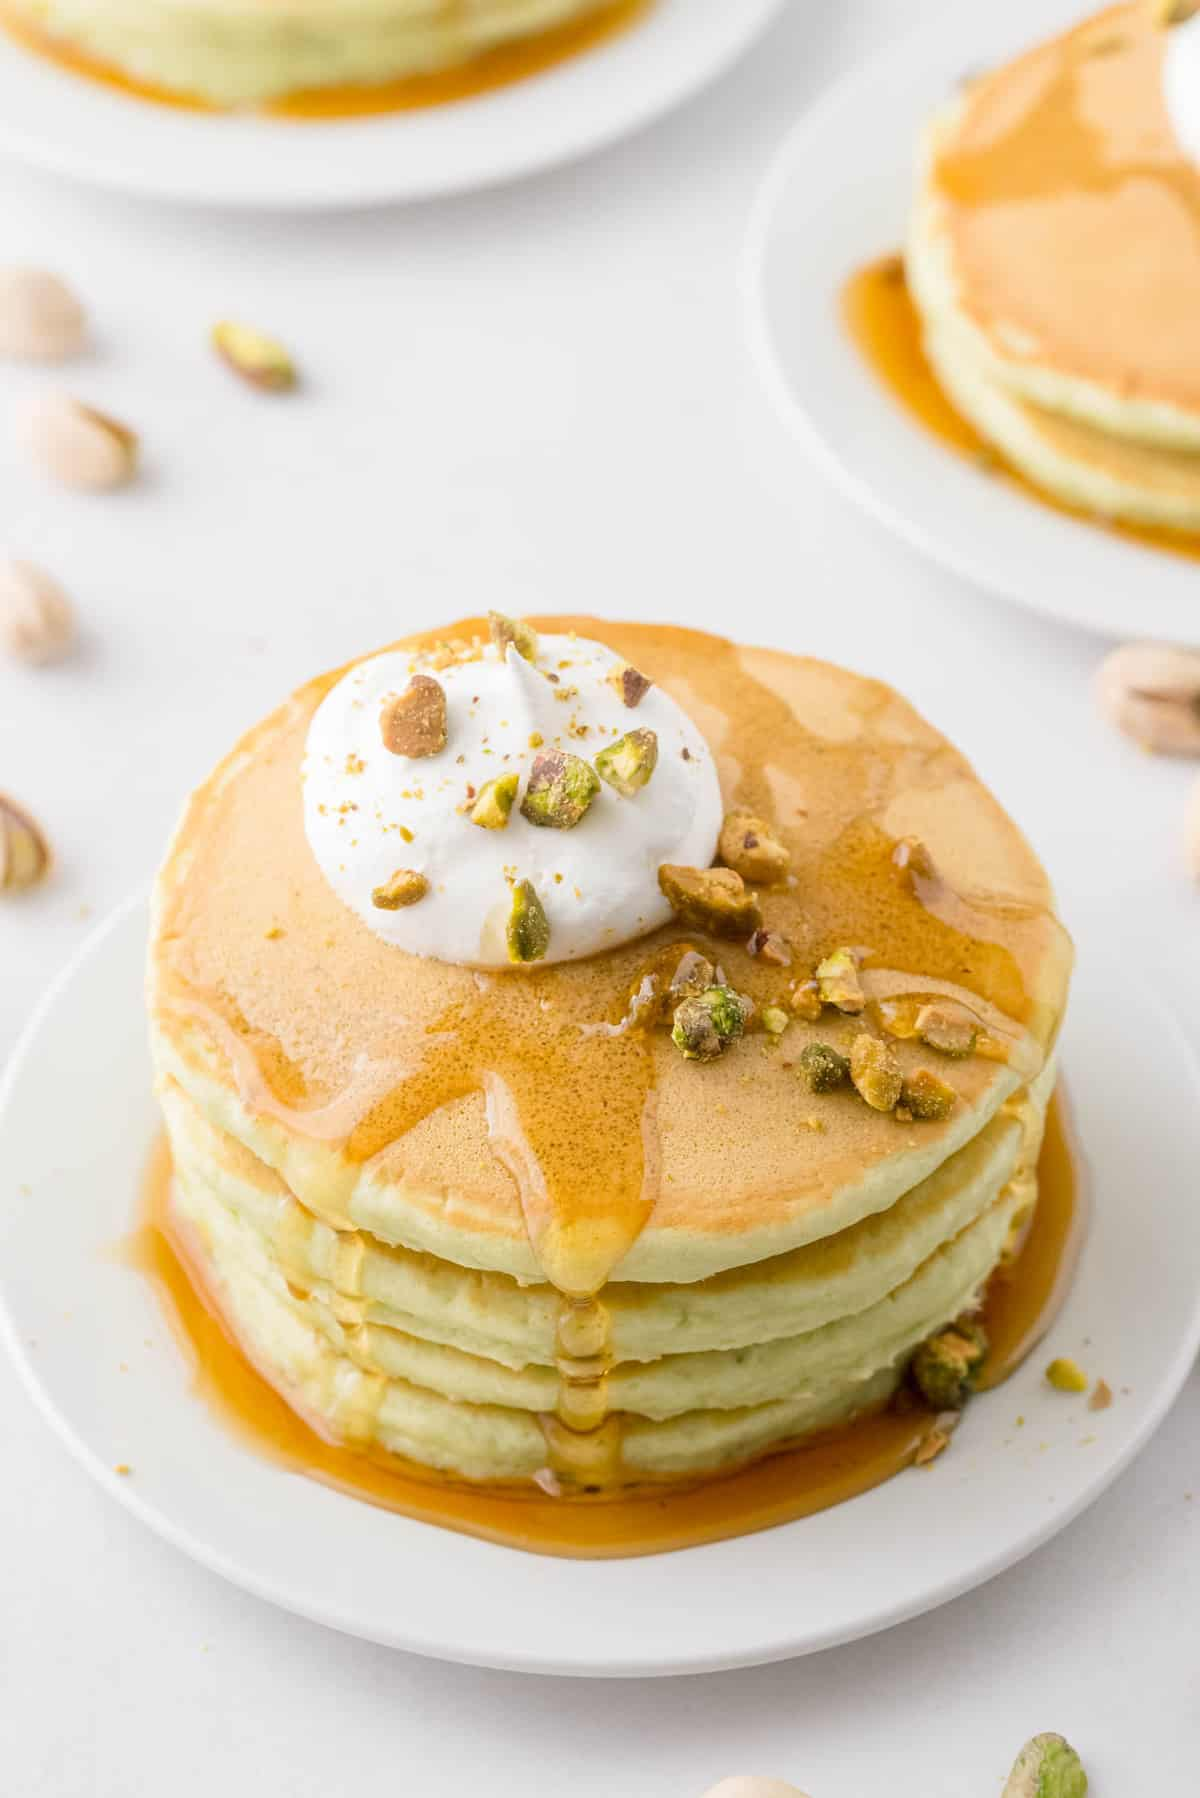 Pancakes topped with syrup, whipped cream, and pistachios.